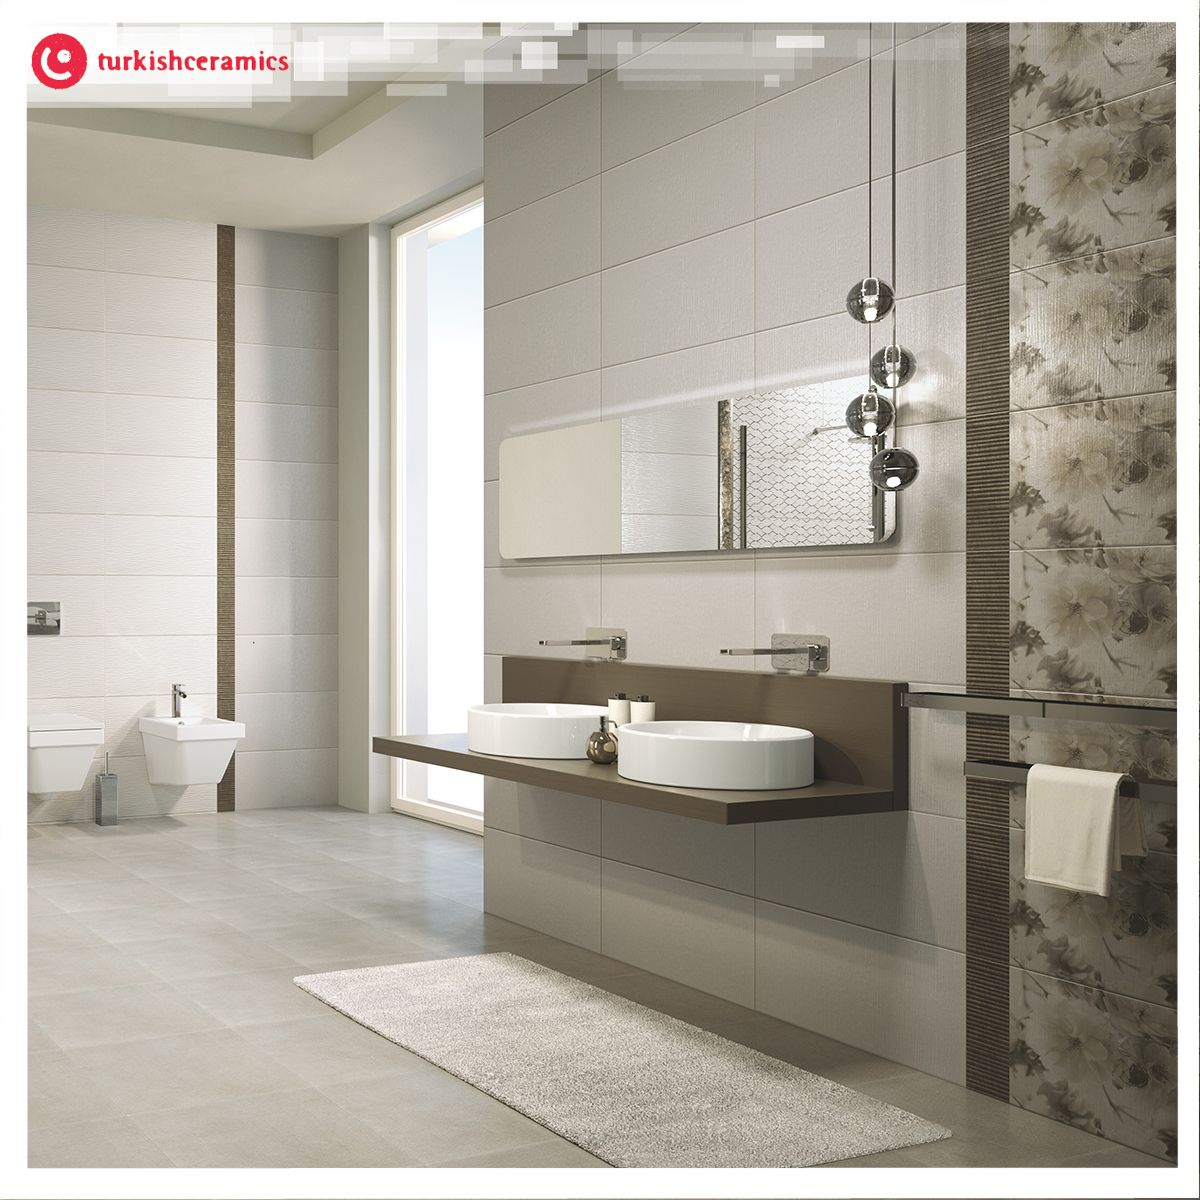 For a one of a kind bathroom use several different types